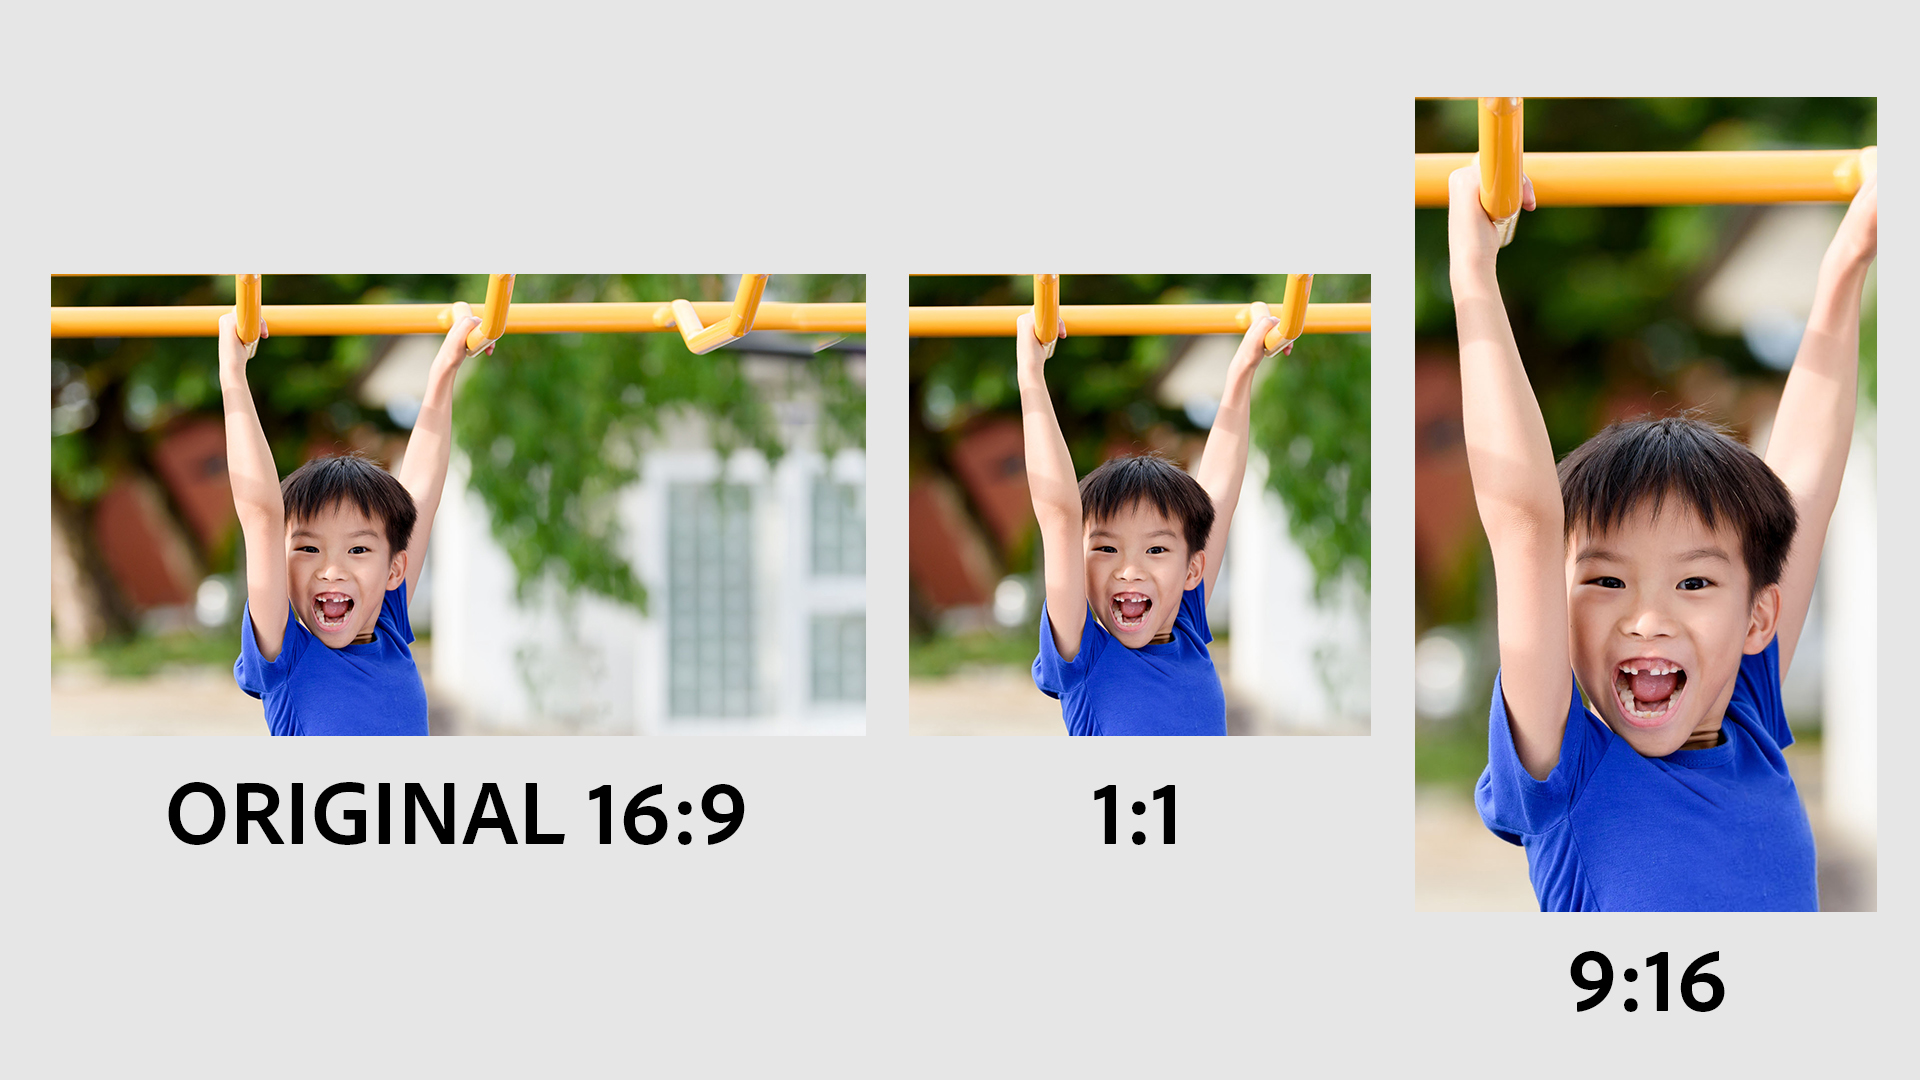 Adobe Elements gains new AI smarts for auto re-framing, pet photo fixes and more